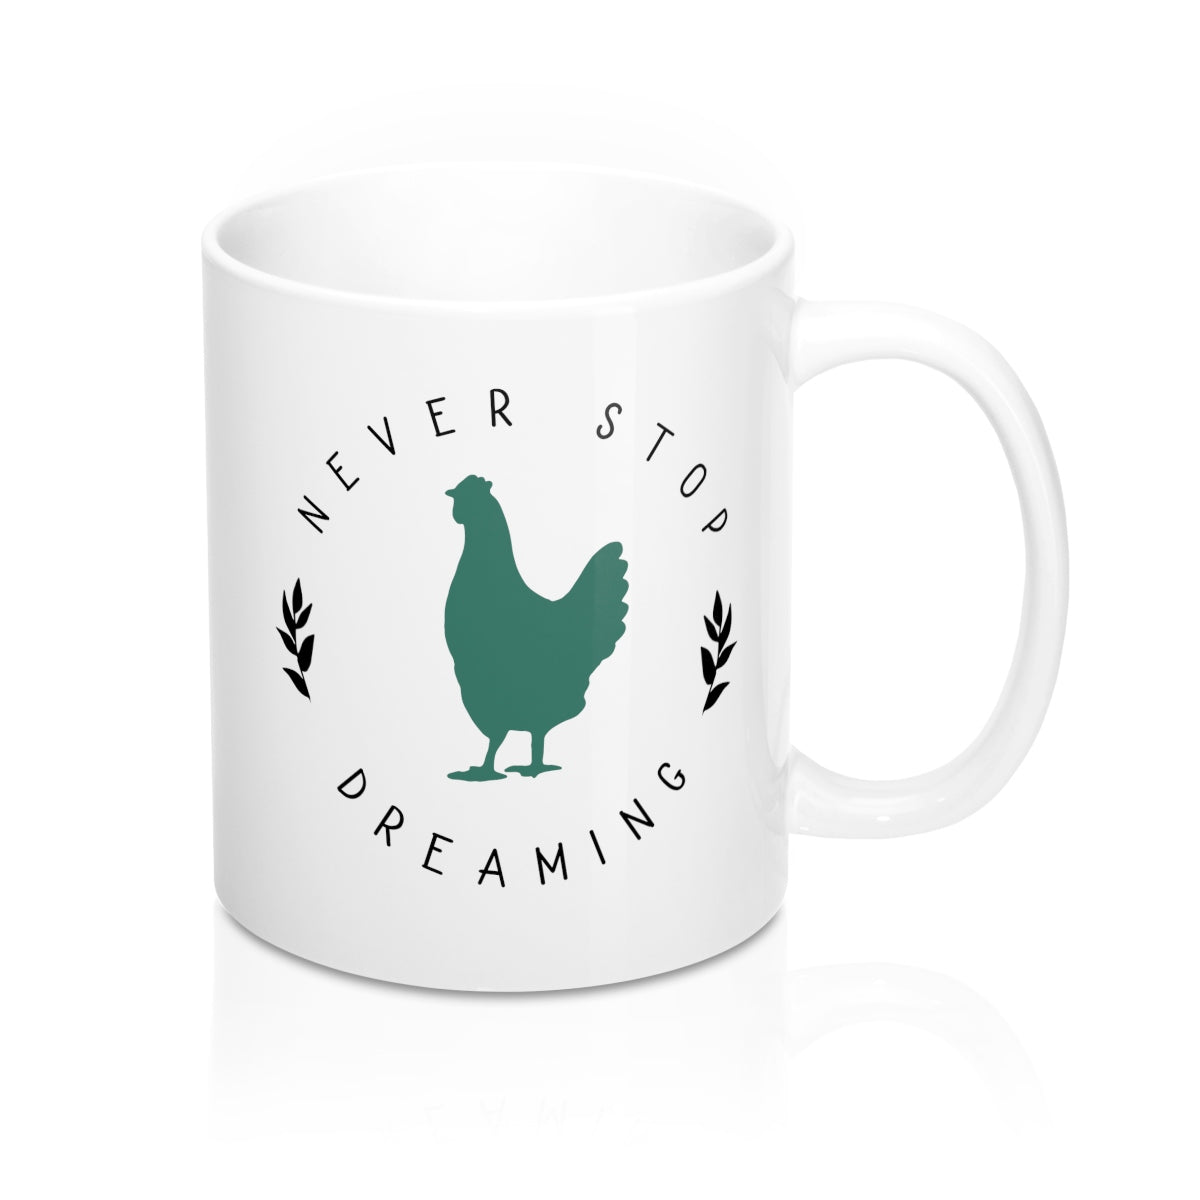 Never stop dreaming chicken Mug 11oz